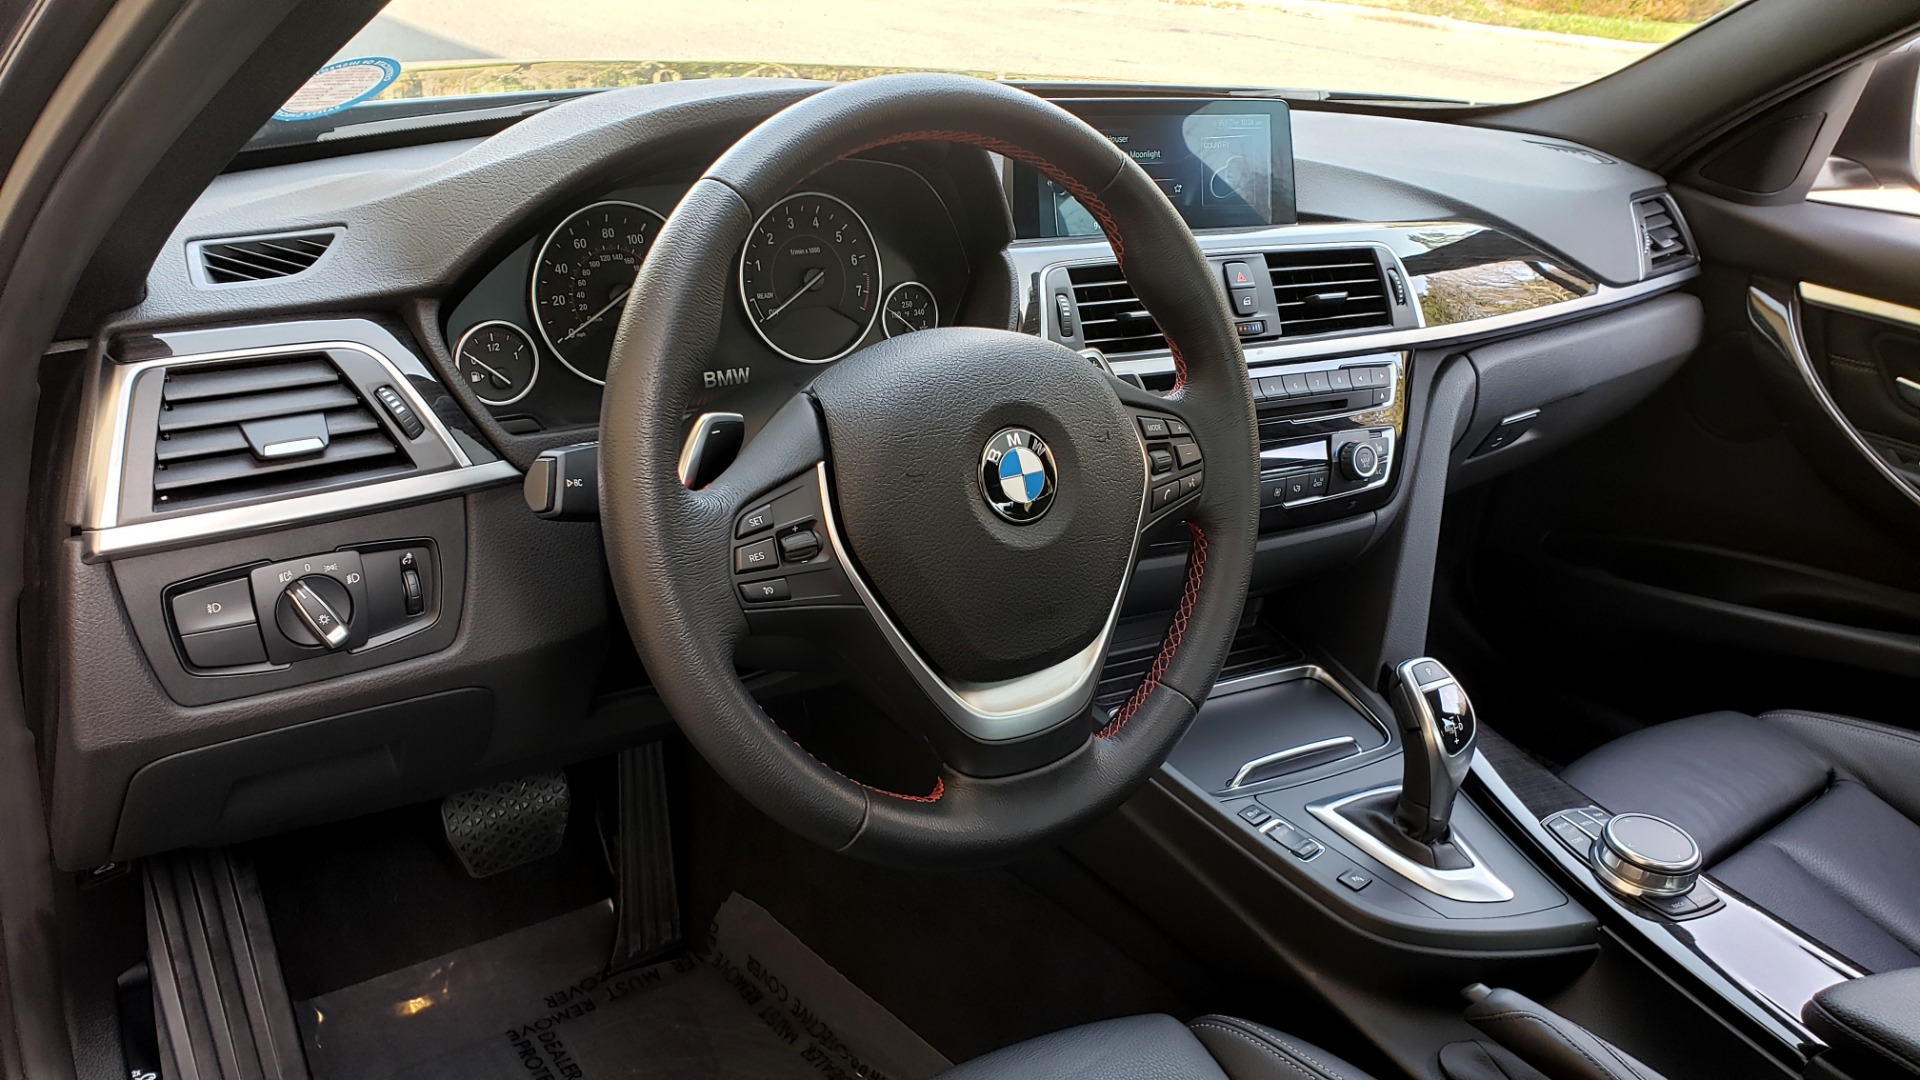 Used 2017 BMW 3 SERIES 330I PREMIUM / DRVR ASST / NAV / SUNROOF / HTD STS / REARVIEW for sale Sold at Formula Imports in Charlotte NC 28227 38